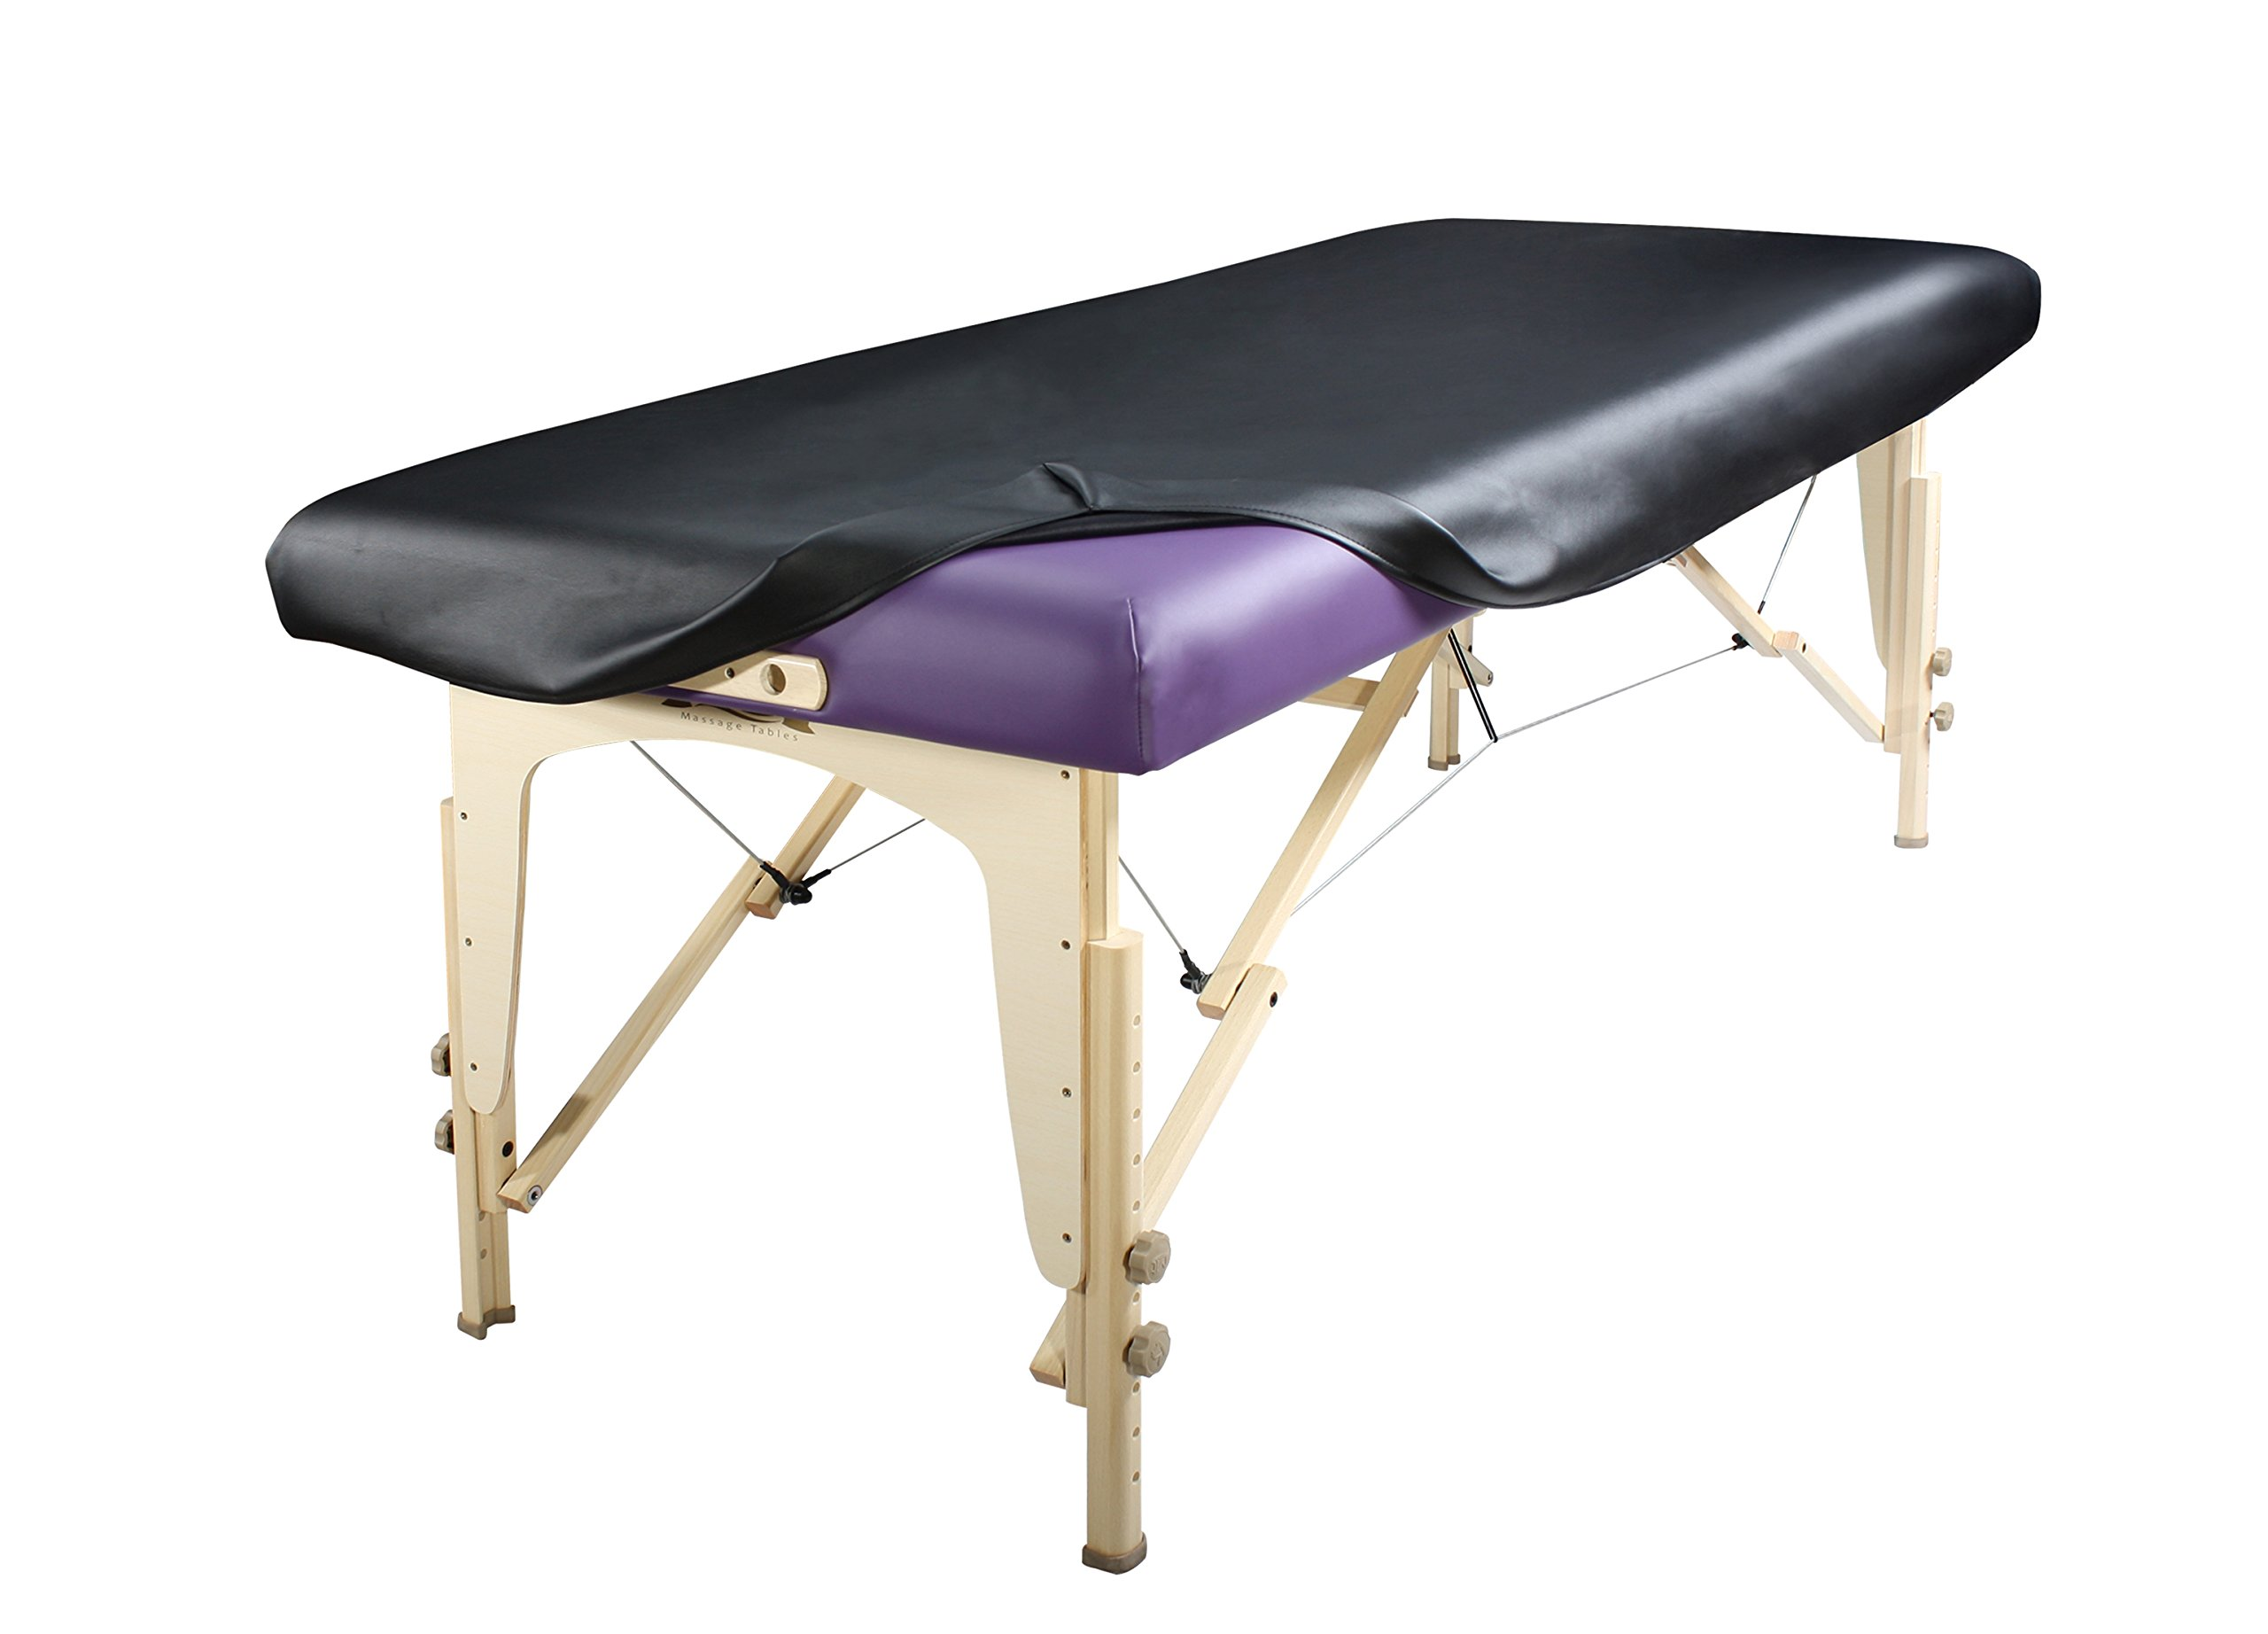 Master Massage Universal Fabric Fitted PU Vinyl leather Ultra-Durable Protection Cover Sheet for Massage Tables, 1 Count by Master Massage